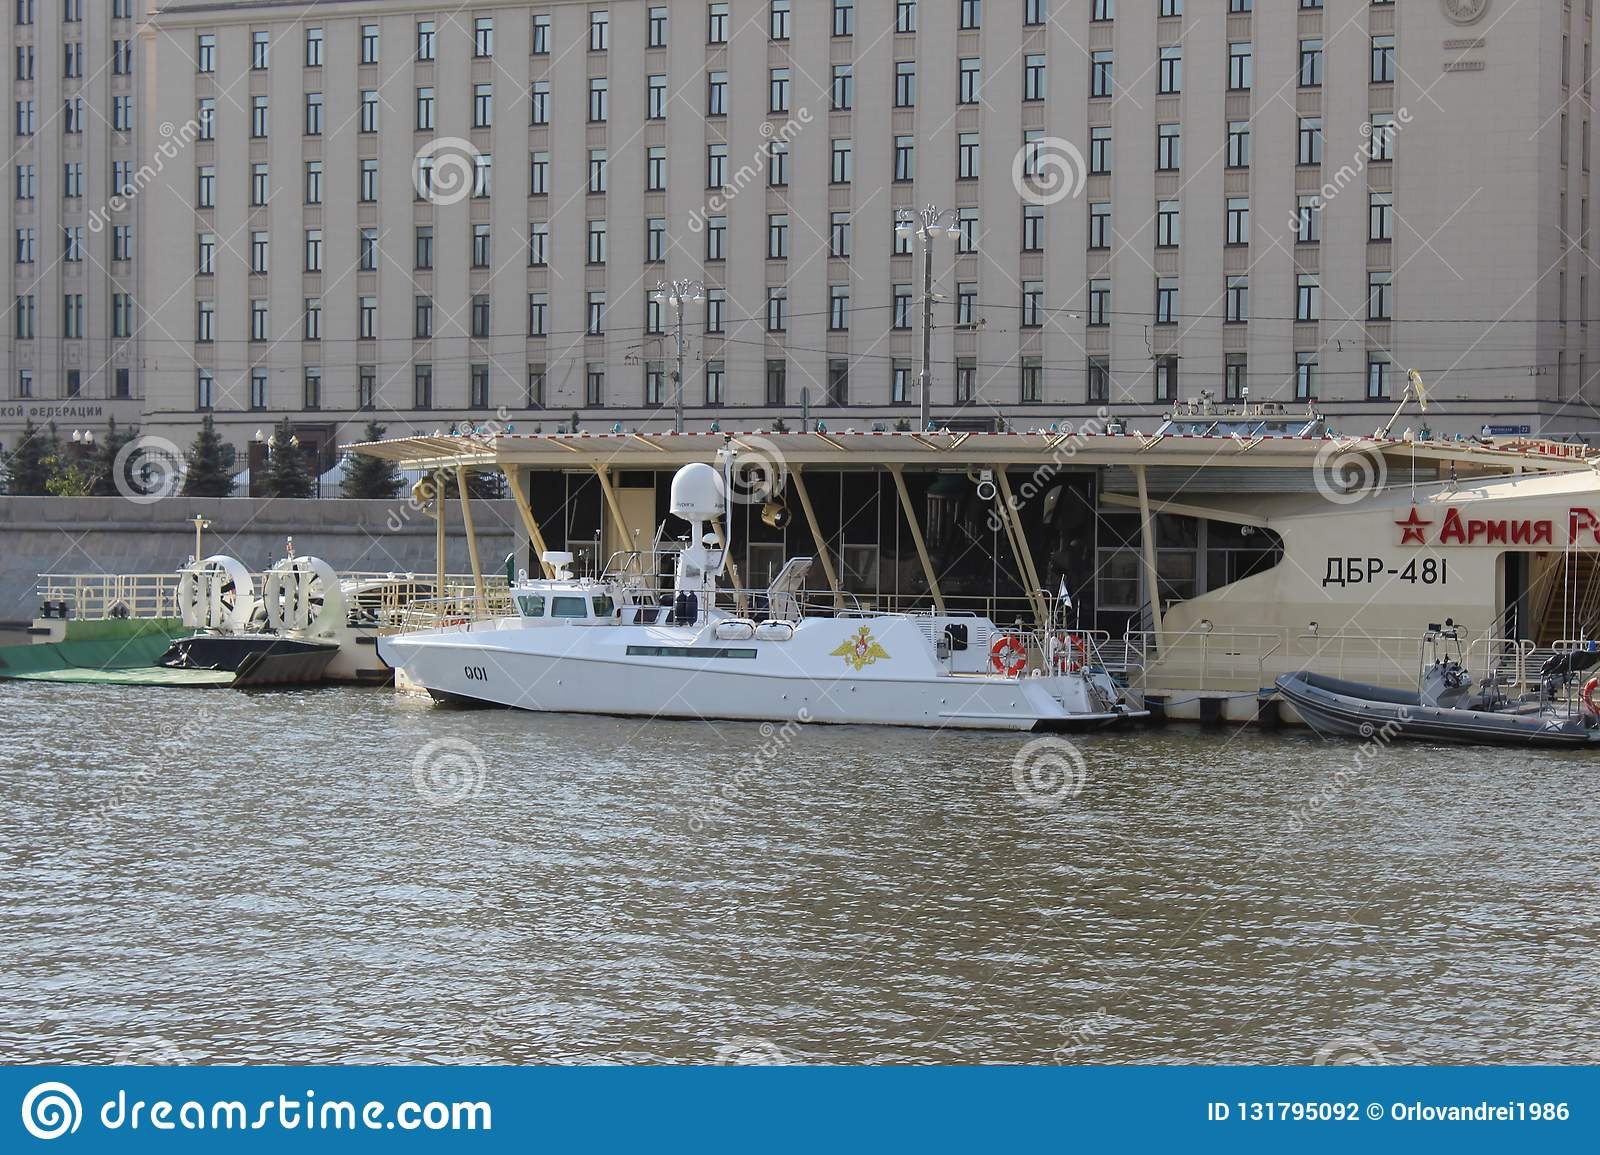 Naval Board № 001 of the President of the Russian Federation and the Commander-in-Chief of the Russian Army